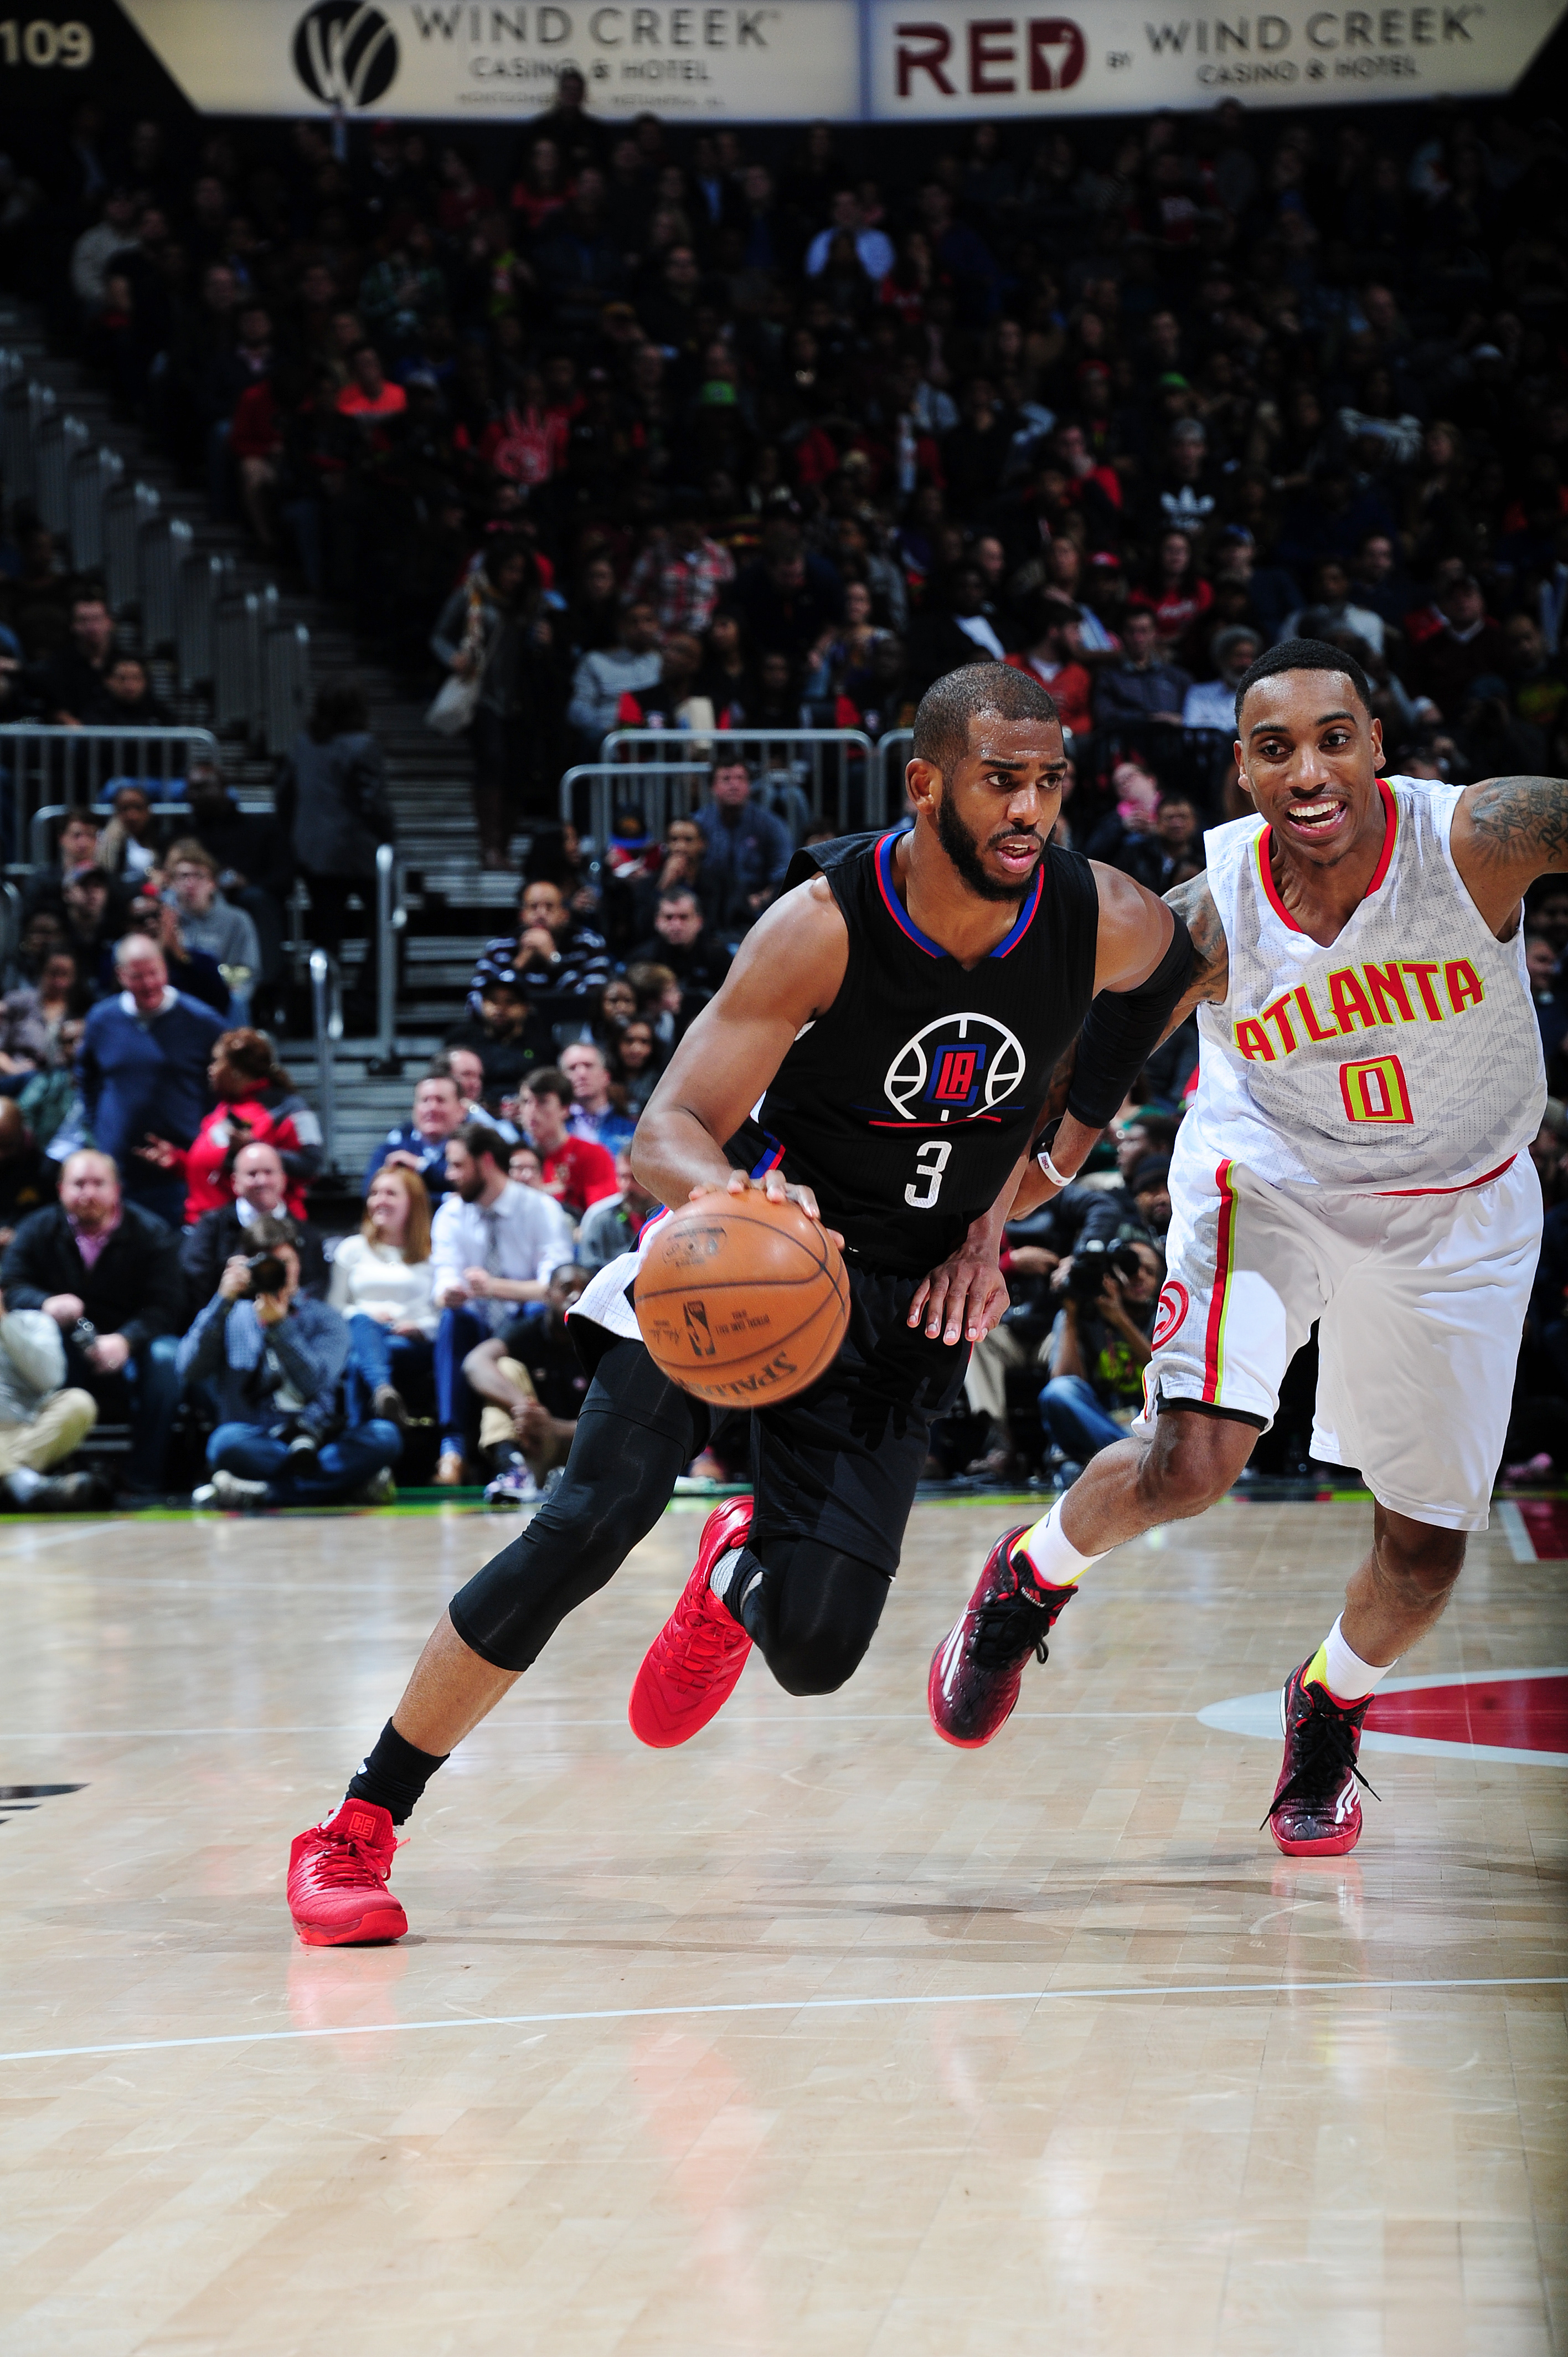 ATLANTA, GA - JANUARY 27: Chris Paul #3 of the Los Angeles Clippers handles the ball against the Atlanta Hawks on January 27, 2016 at Philips Arena in Atlanta, Georgia.  (Photo by Scott Cunningham/NBAE via Getty Images)